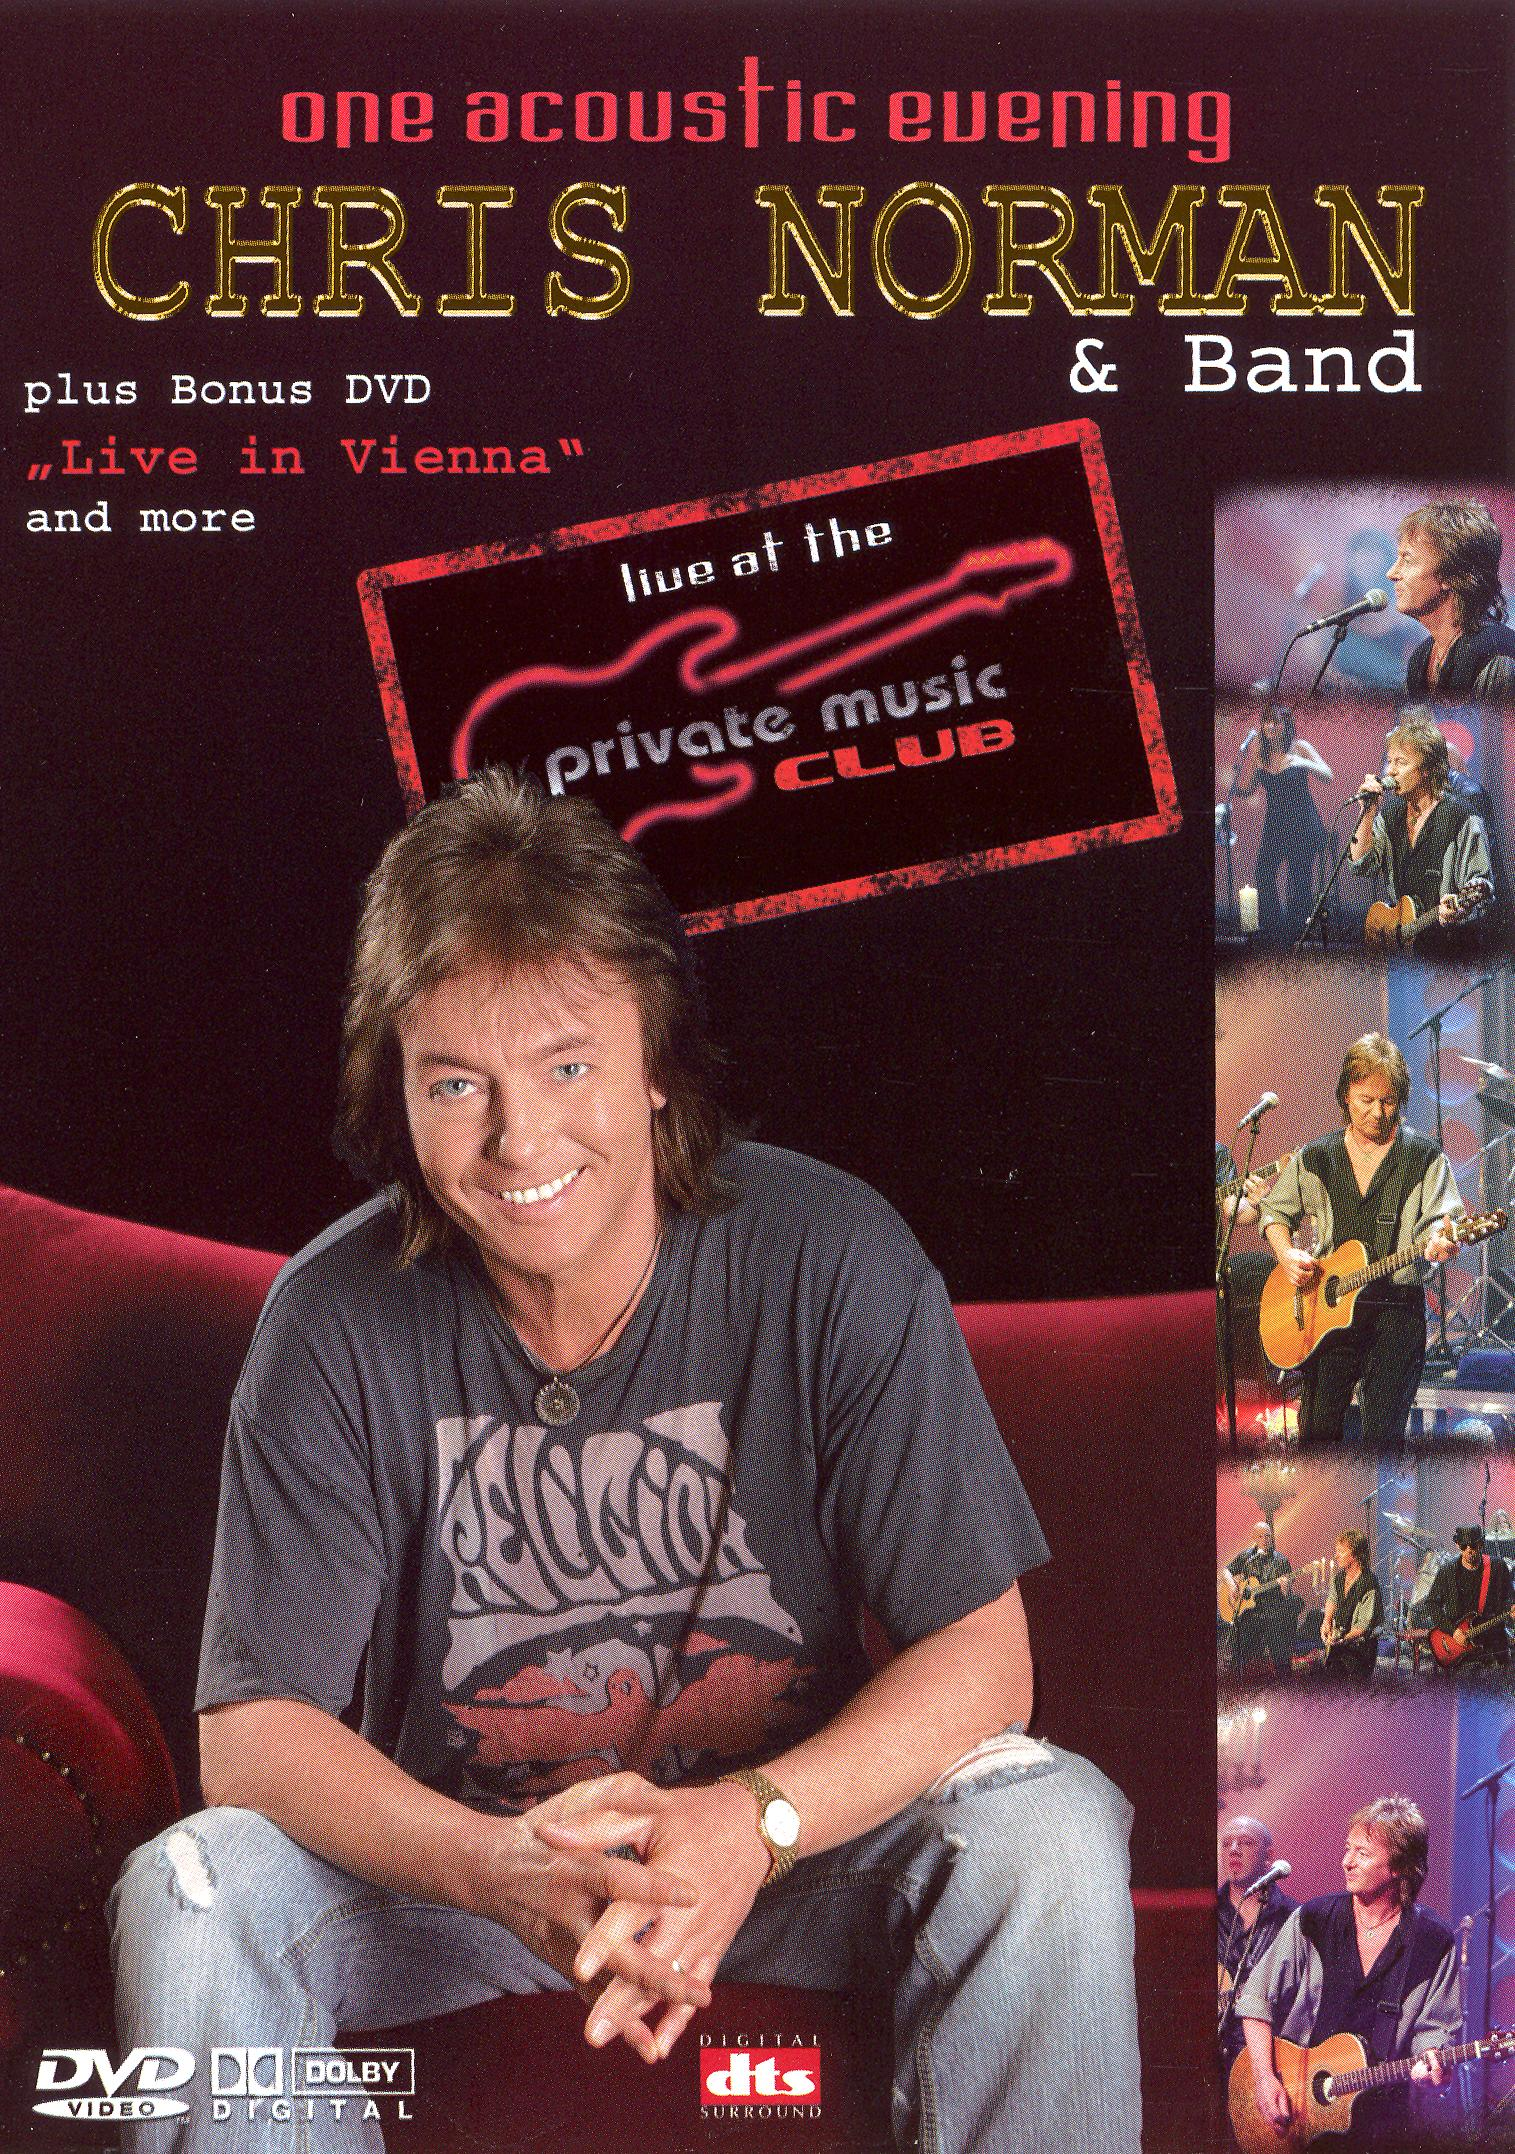 Chris Norman: One Acoustic Evening